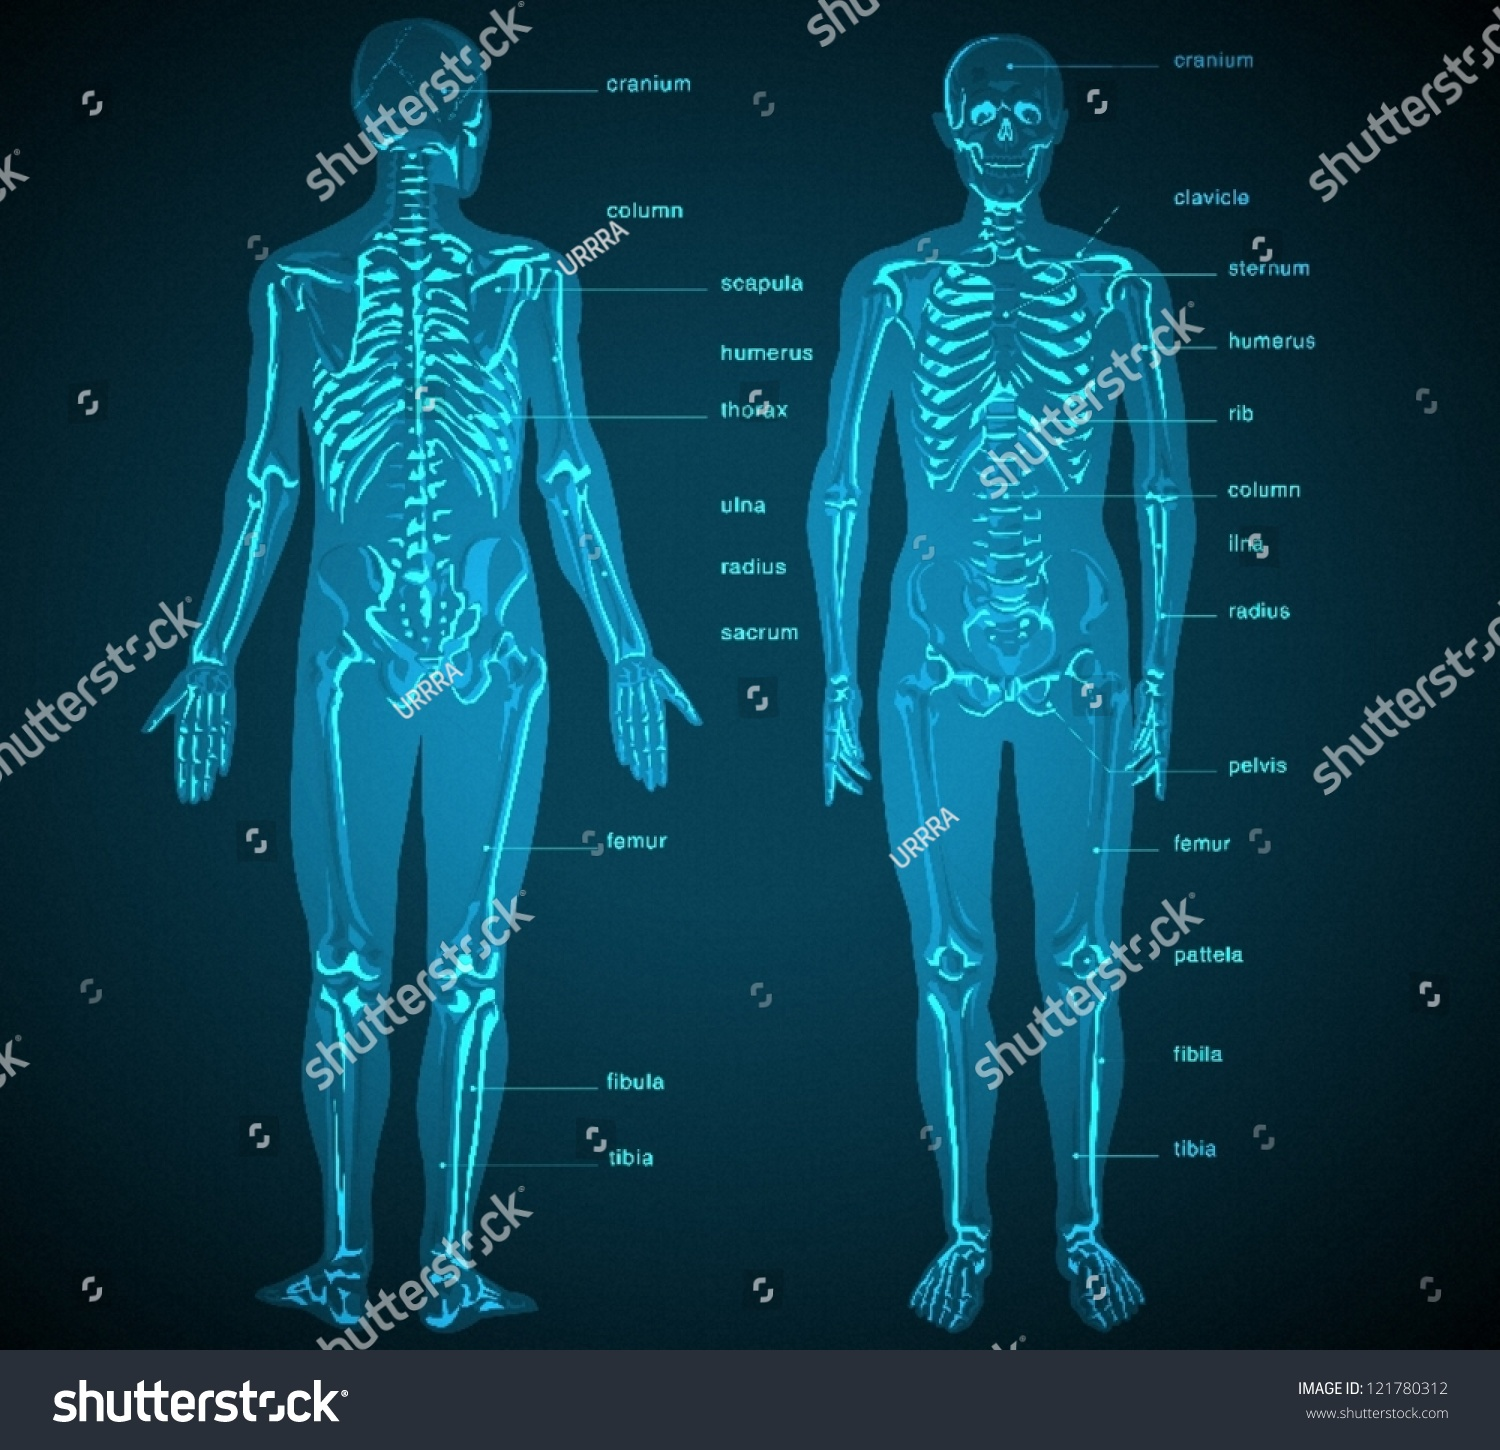 Bones Of Body With Names  mon Bone Names Effortless Movement besides Spine Diagram Labeled Parts Of The Spinal Cord Labeled Anatomy Chart Body besides Regenbogen Rauch Hintergrundbilder moreover Human Body Arteries And Veins Diagram Picture in addition Loveški skelet. on human skeleton